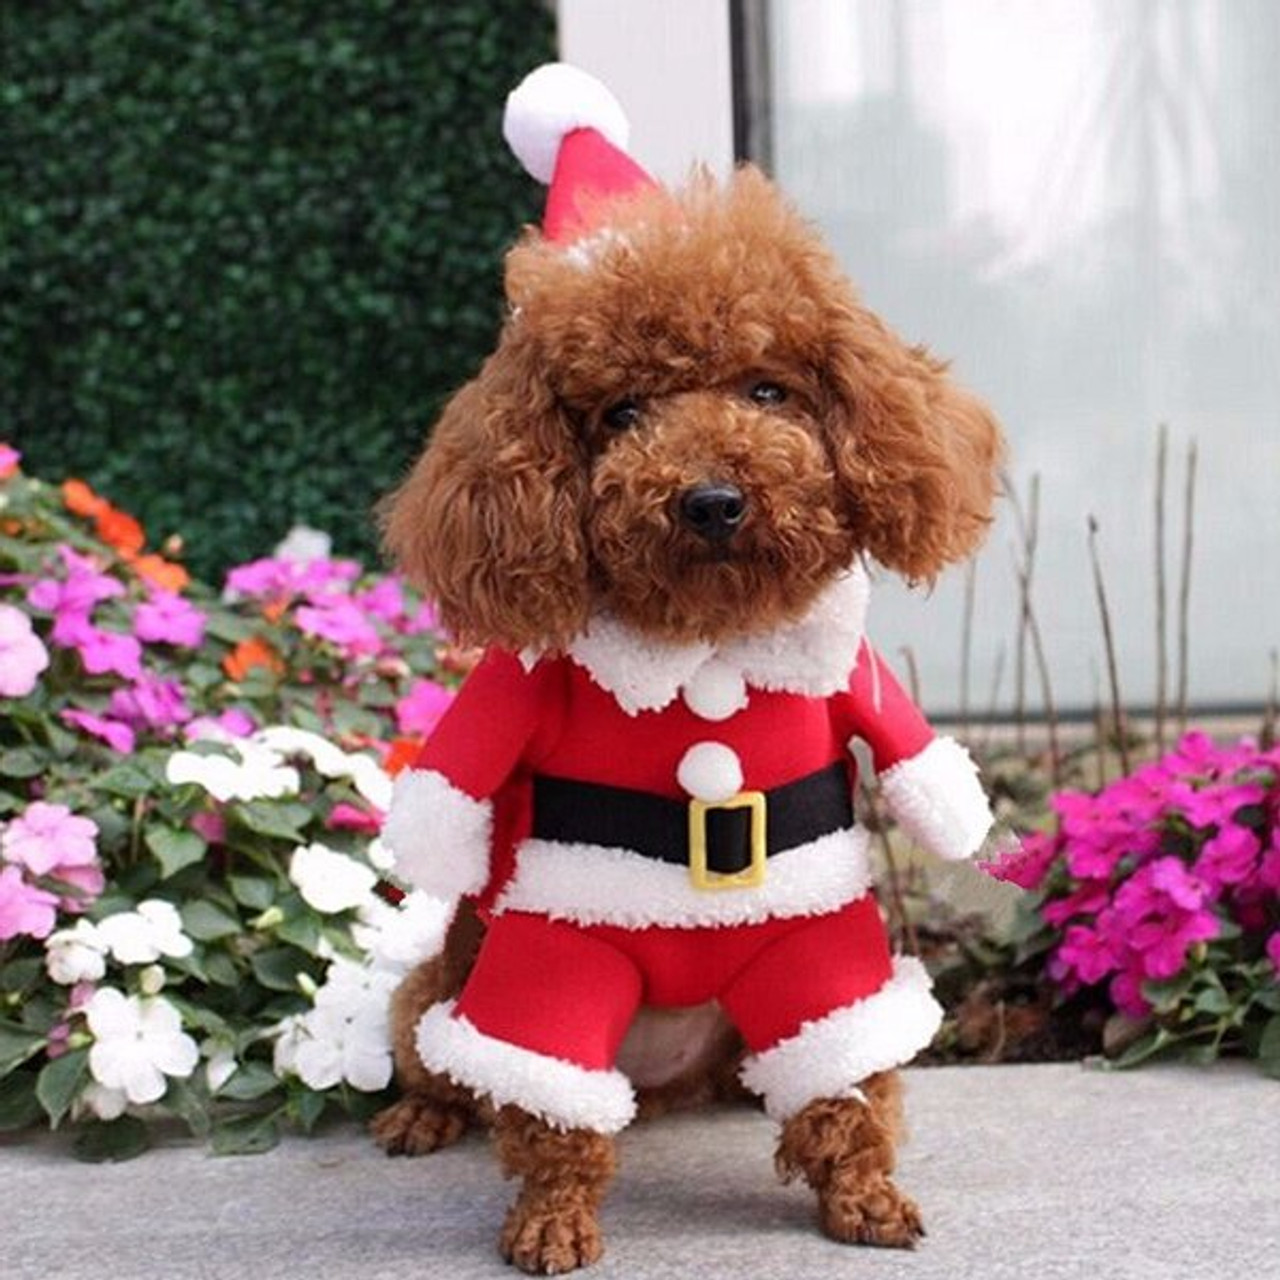 Santa Claus Costume Outfit With Hat Pet Dog Puppy Christmas Clothes Apparel - Santa Claus Costume Outfit With Hat Pet Dog Puppy Christmas Clothes